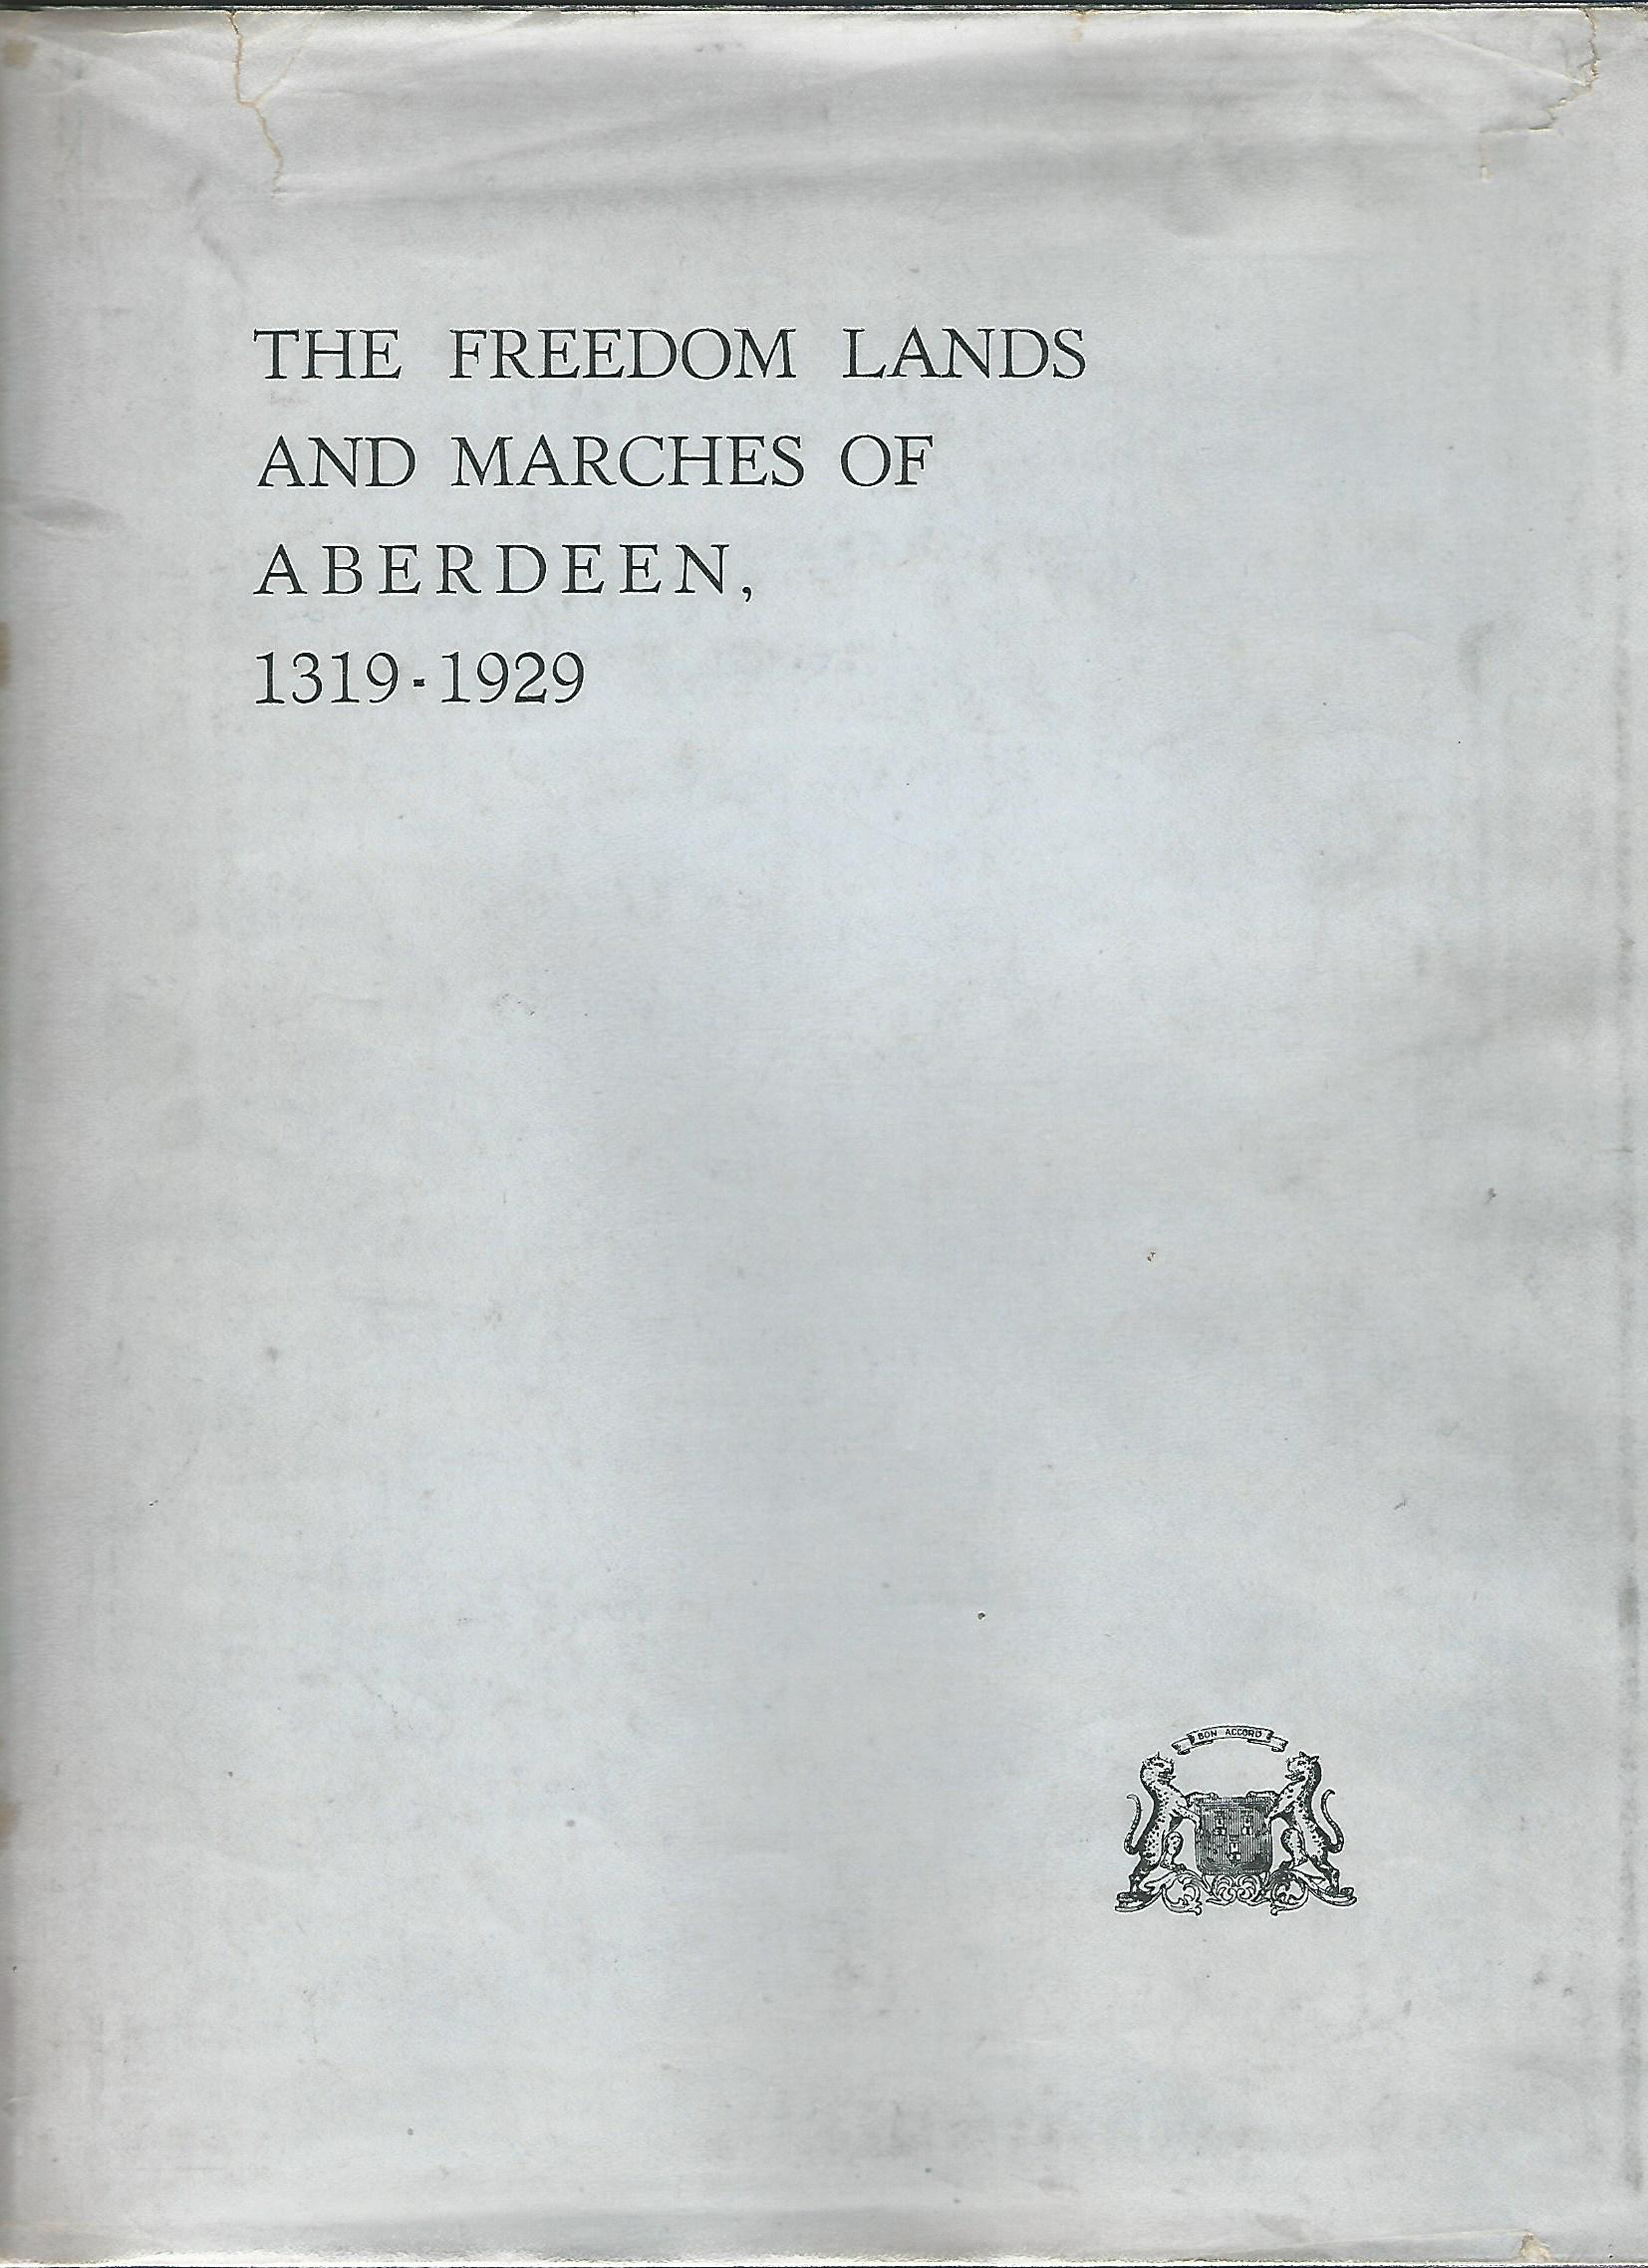 Image for The Freedom Lands and Marches of Aberdeen 1319-1929.